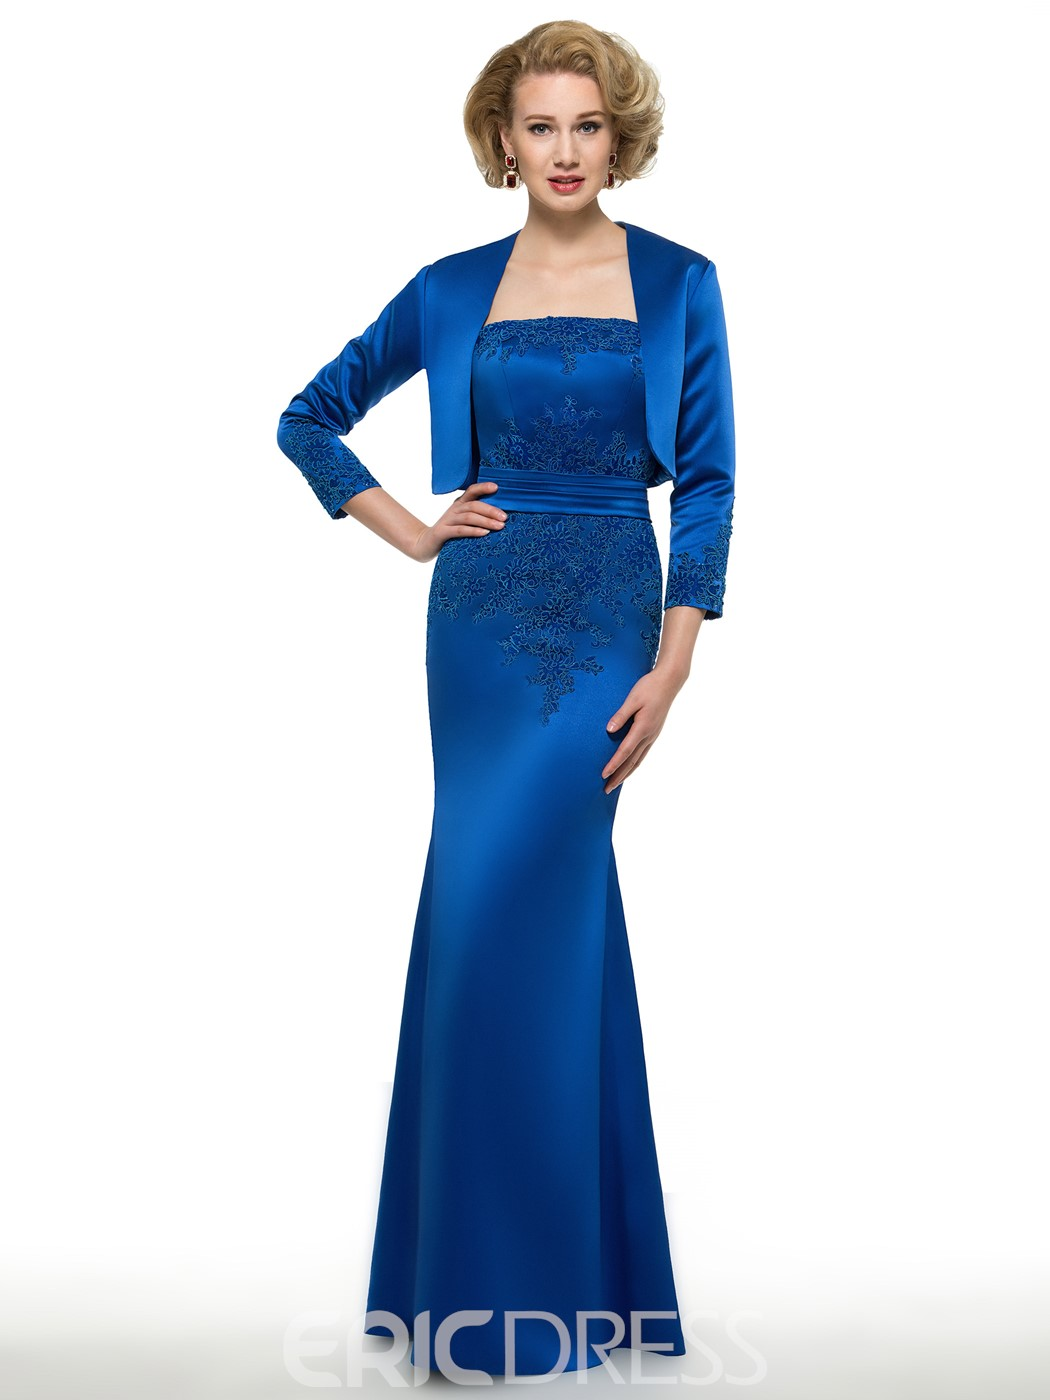 Ericdress Modest Strapless Long Mother Of The Bride Dress With Jacket